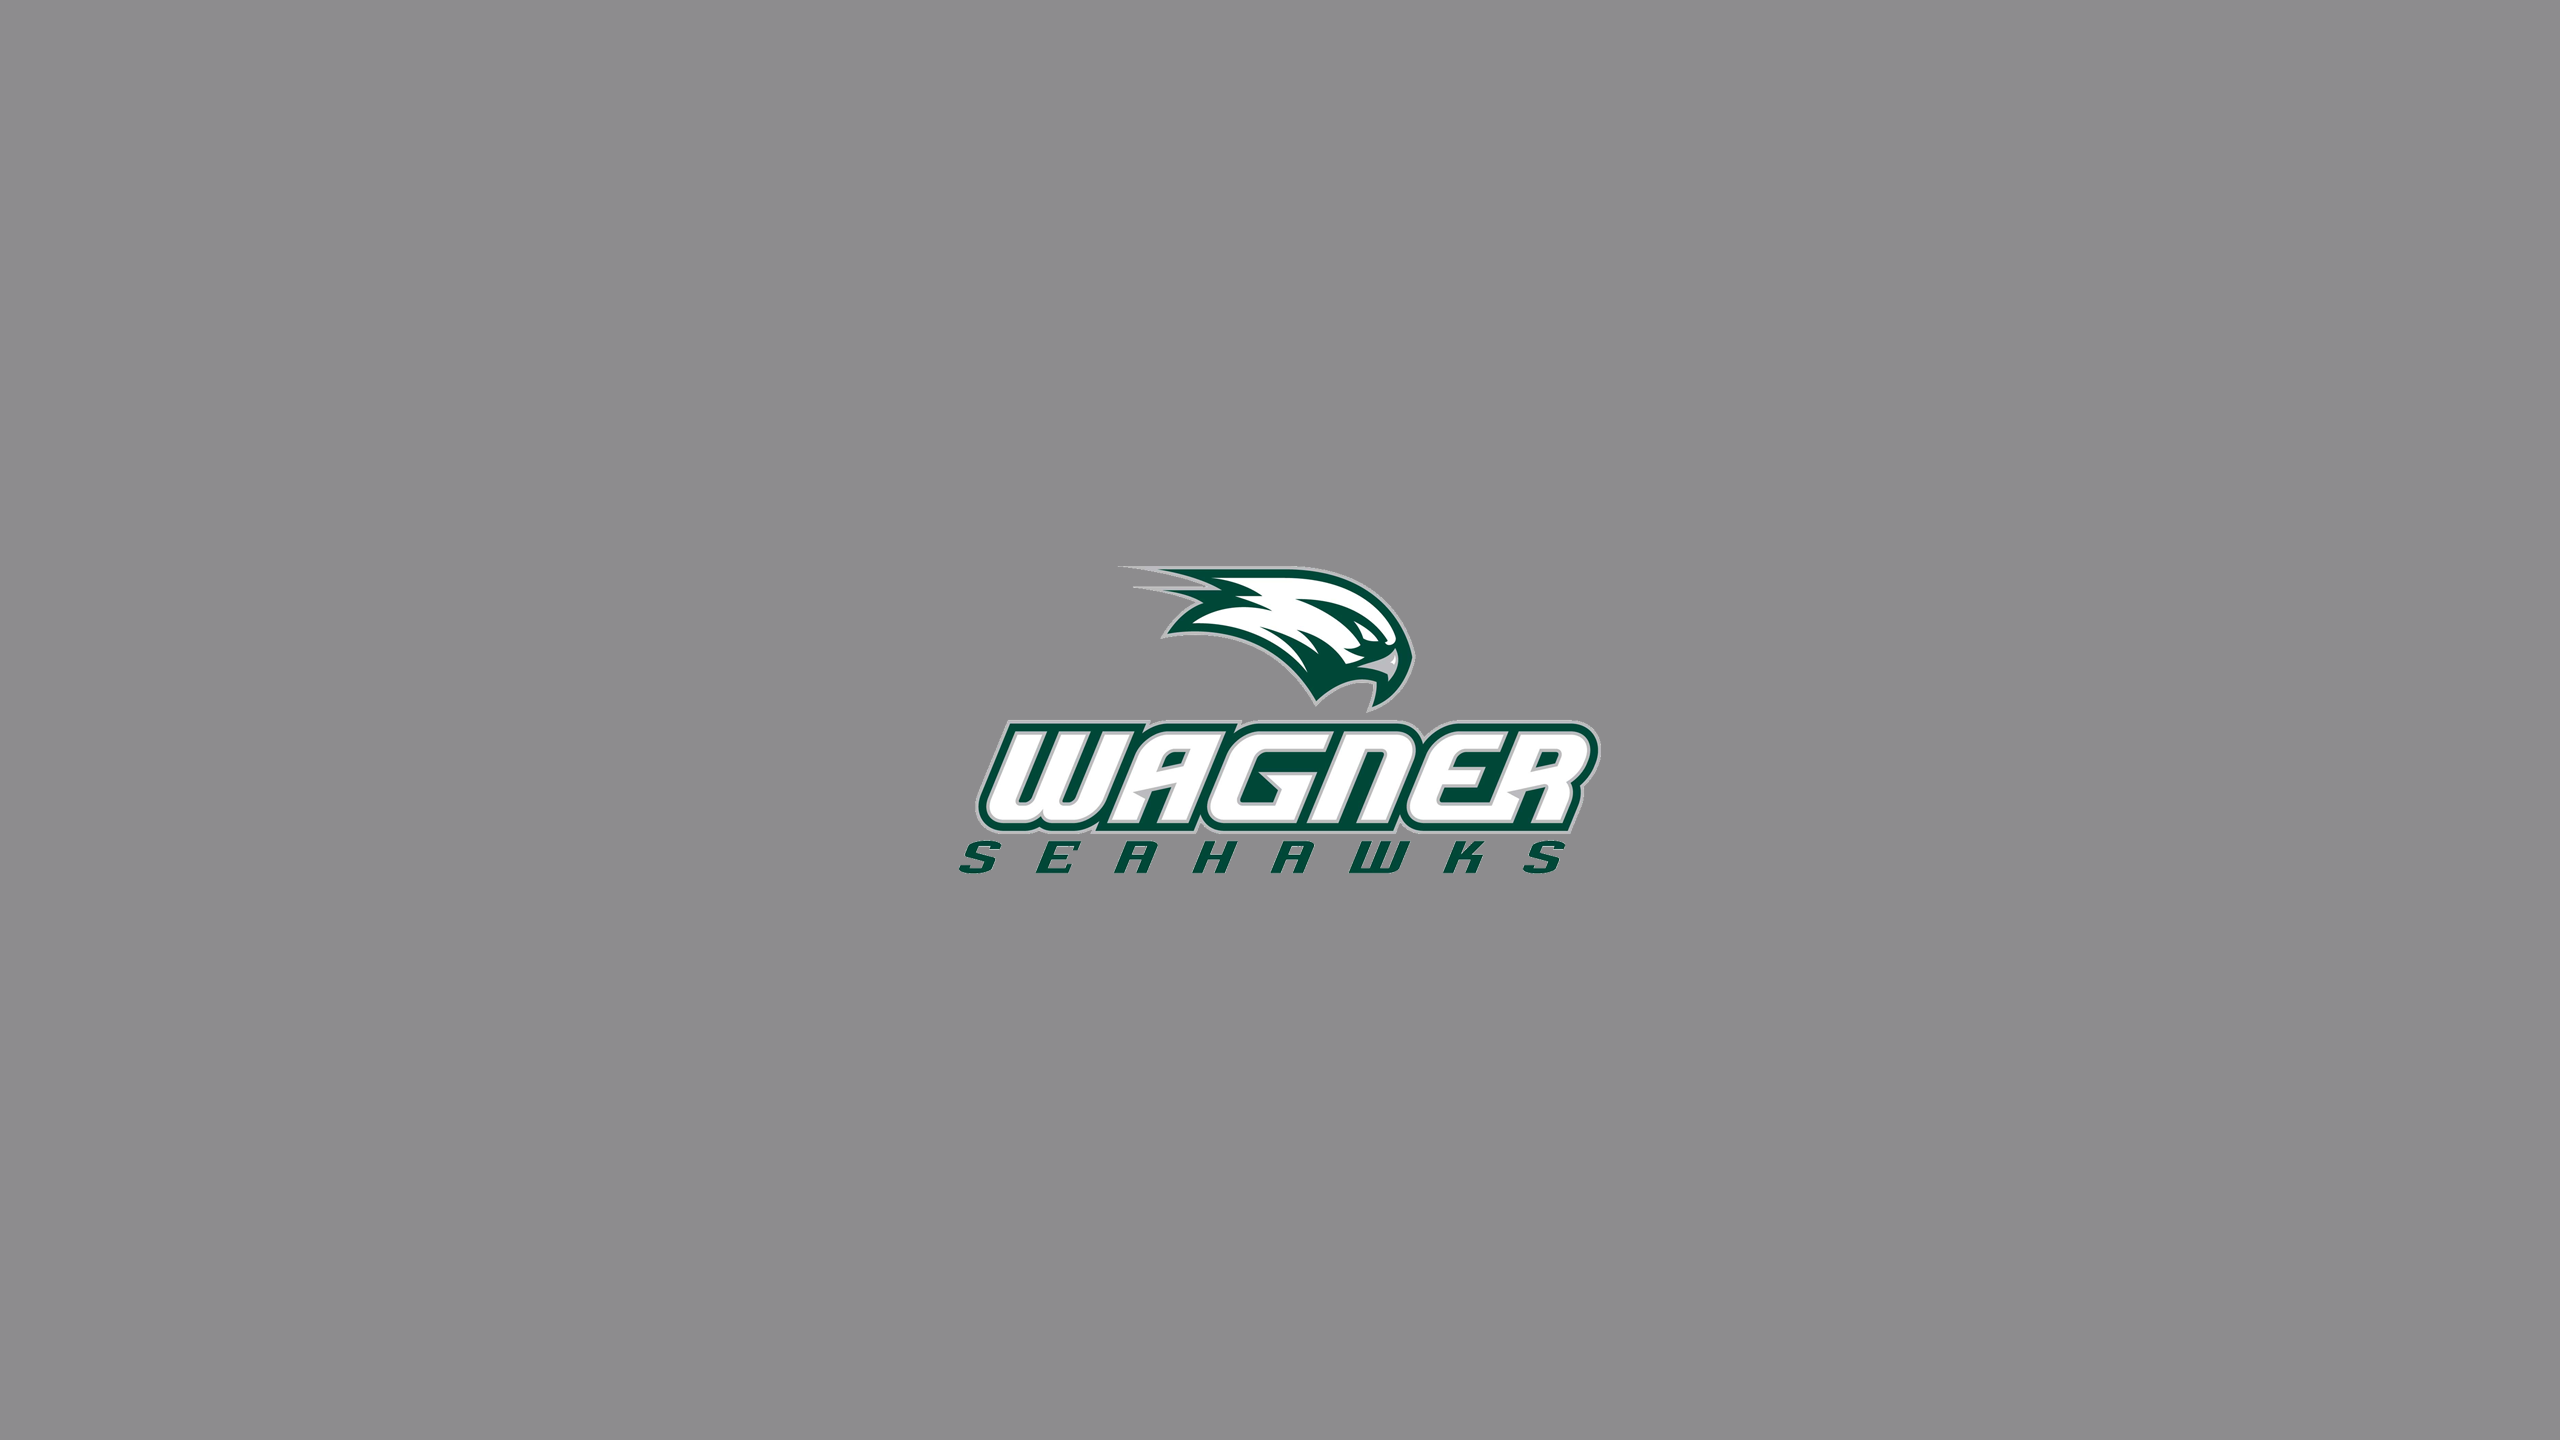 Wagner University Seahawks